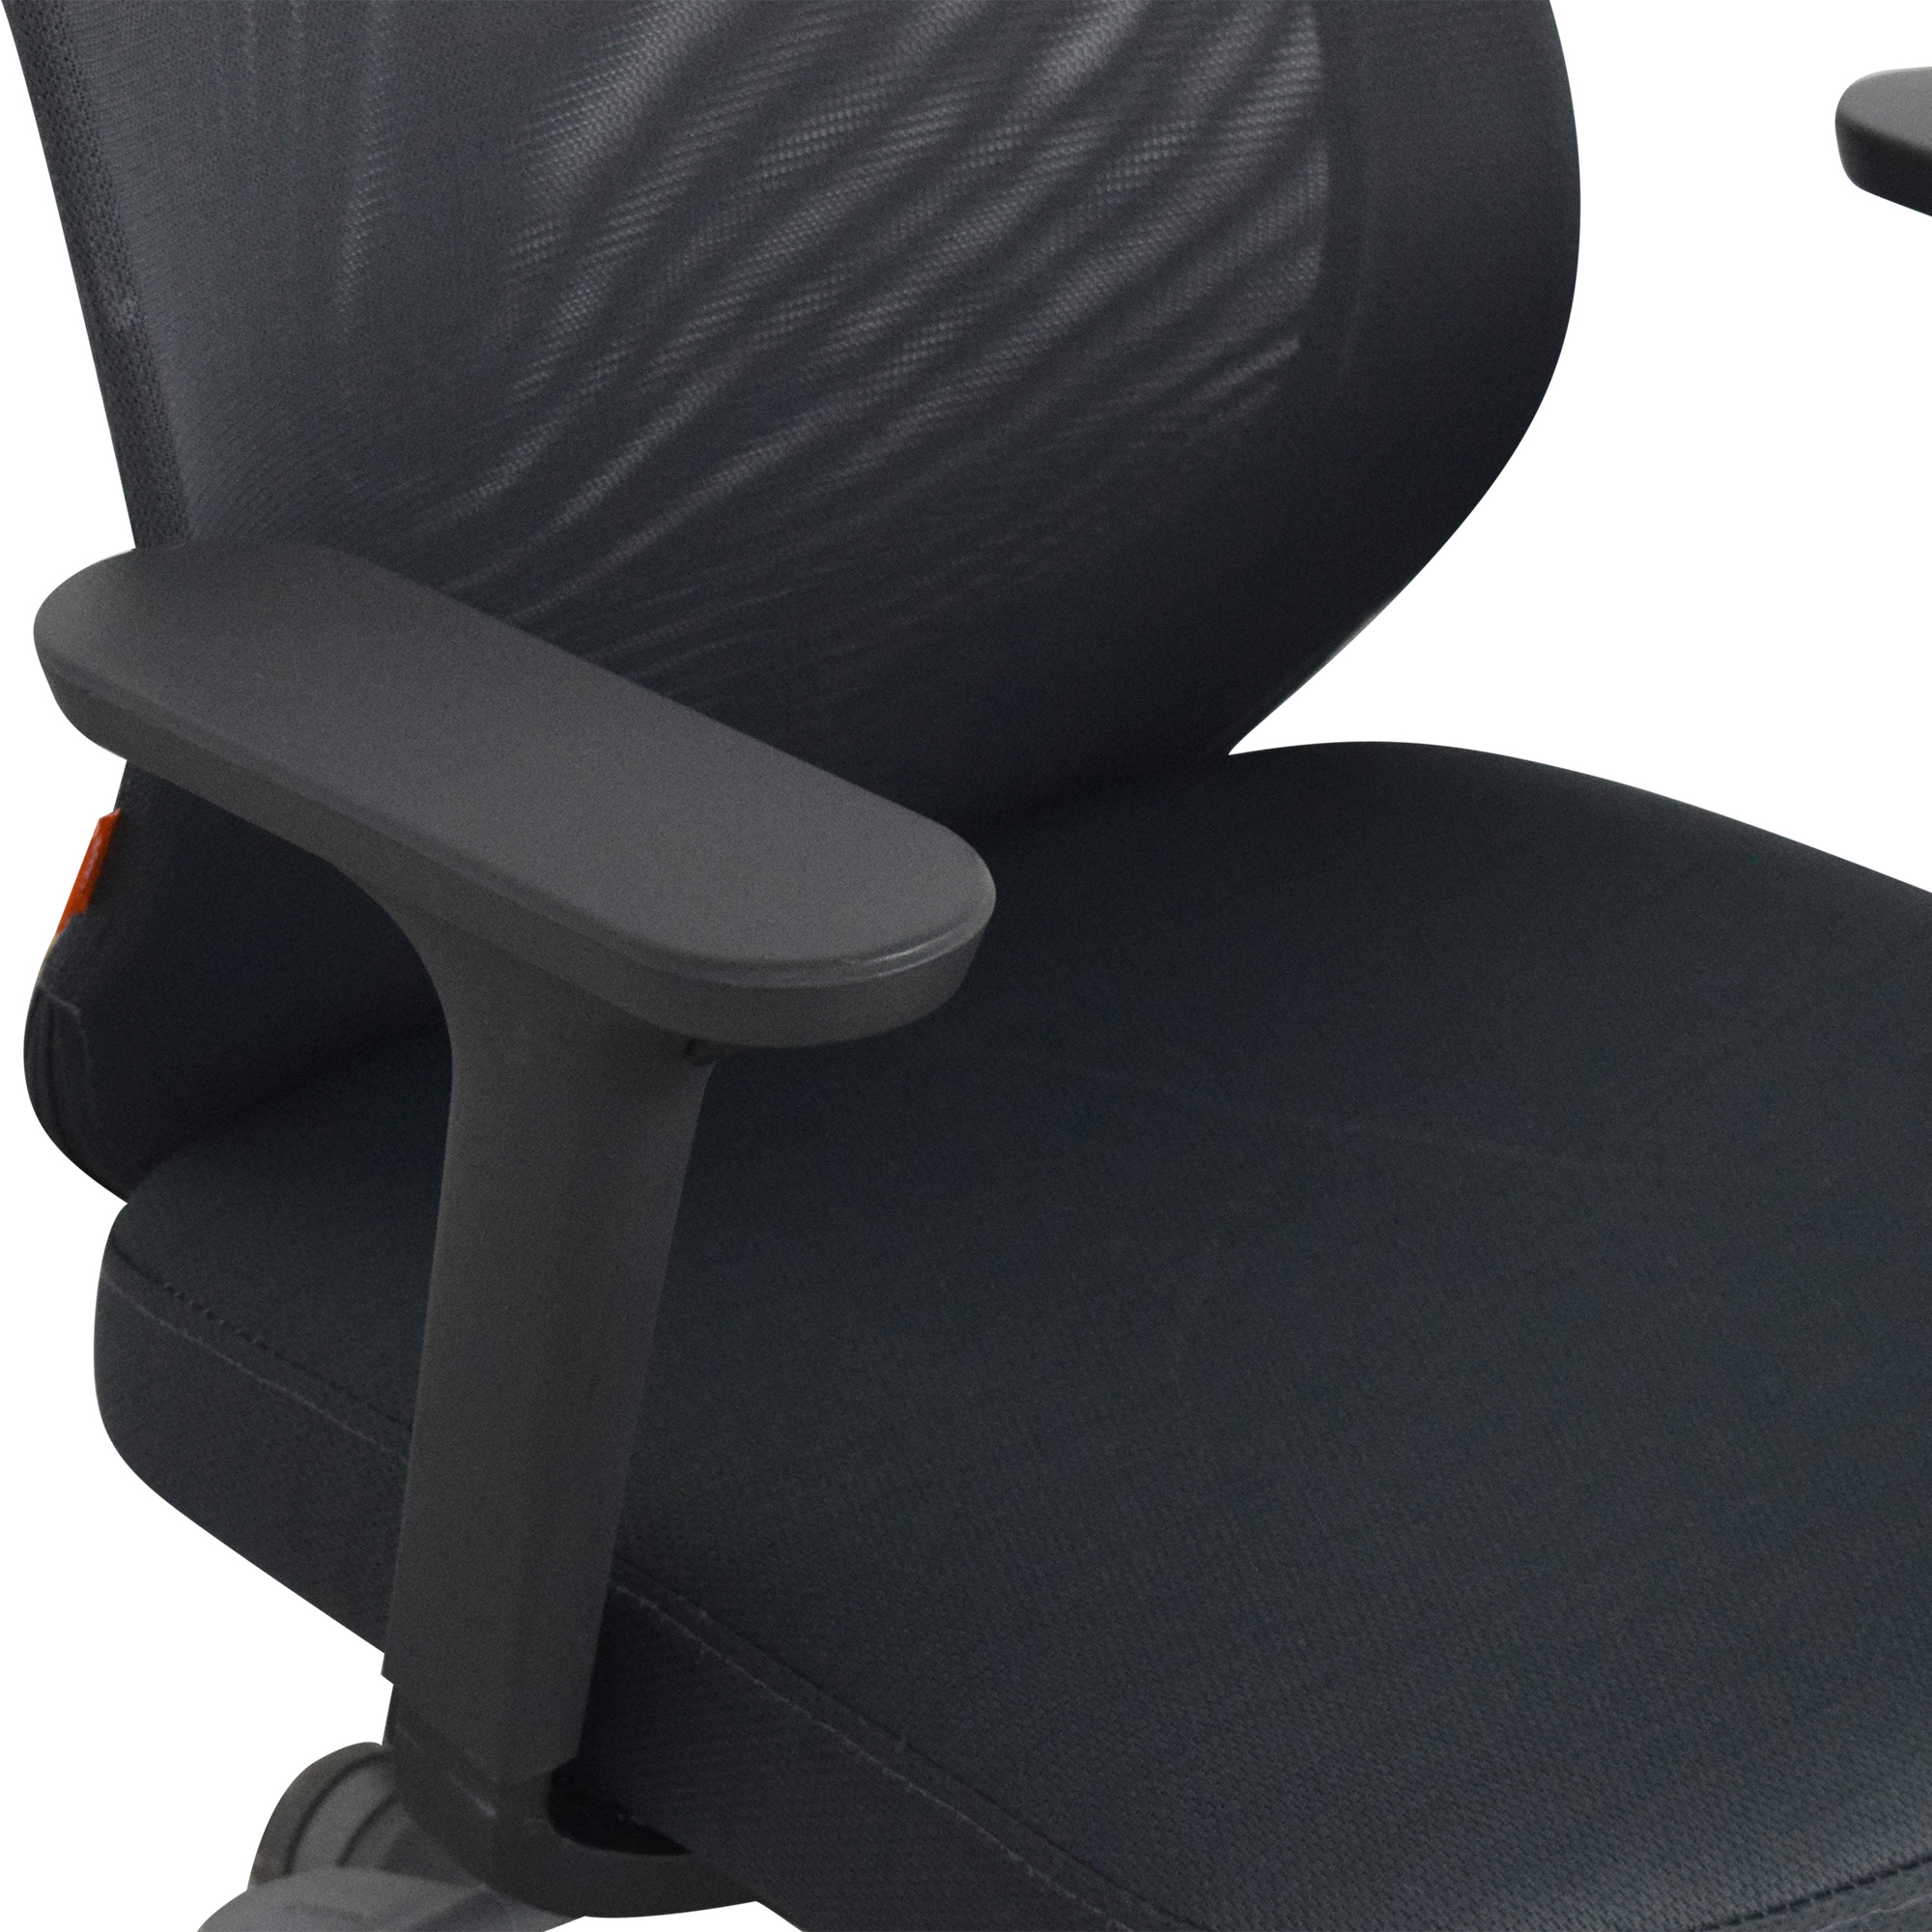 Poppin Max Task Chair Poppin